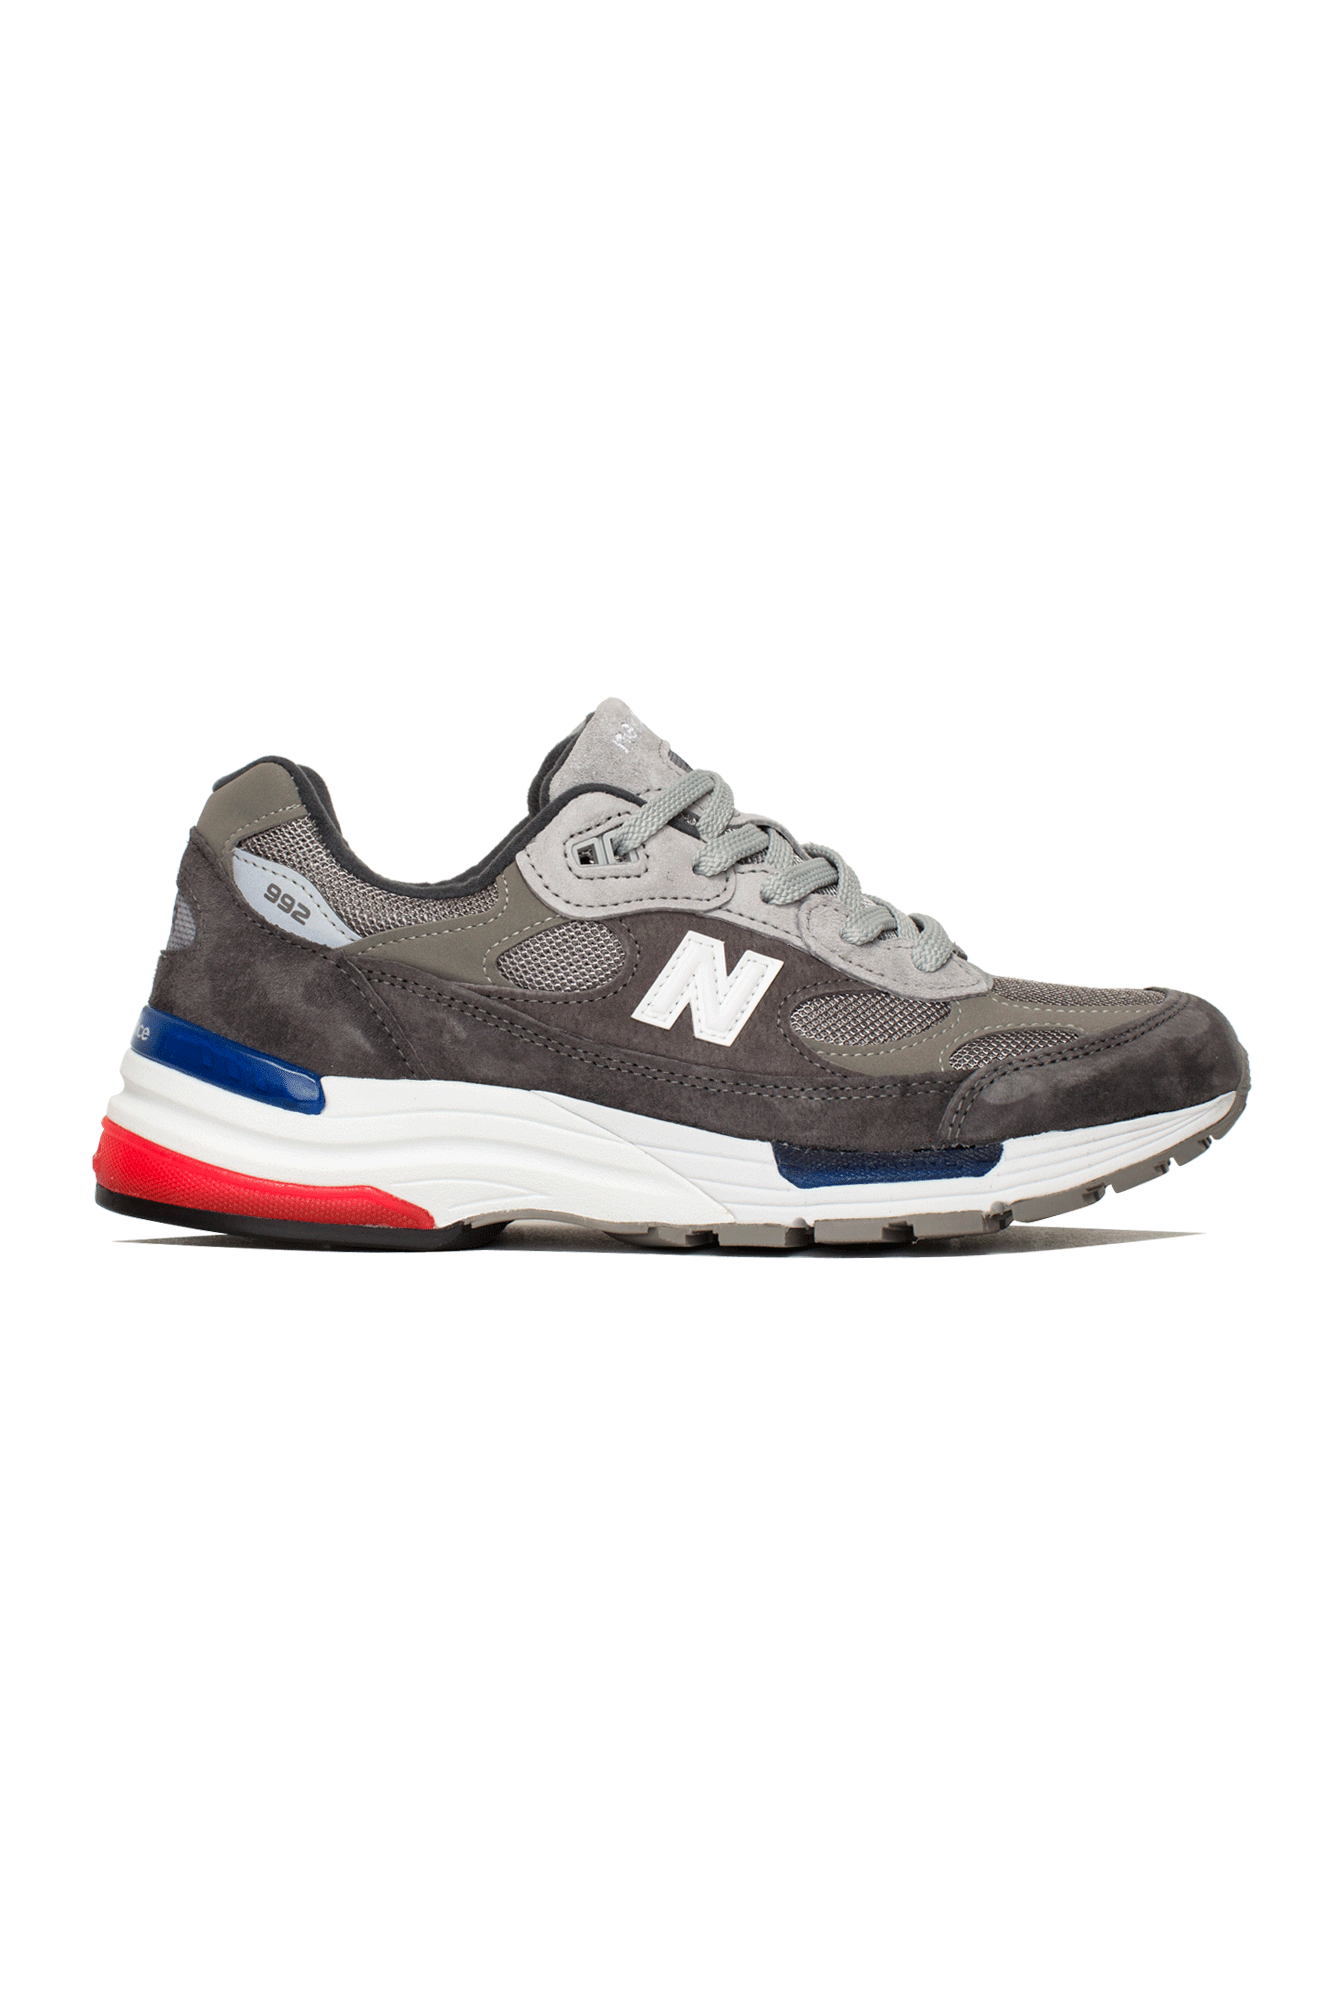 New Balance Sneakers 992 Grigio M992#000#AG#8 - One Block Down